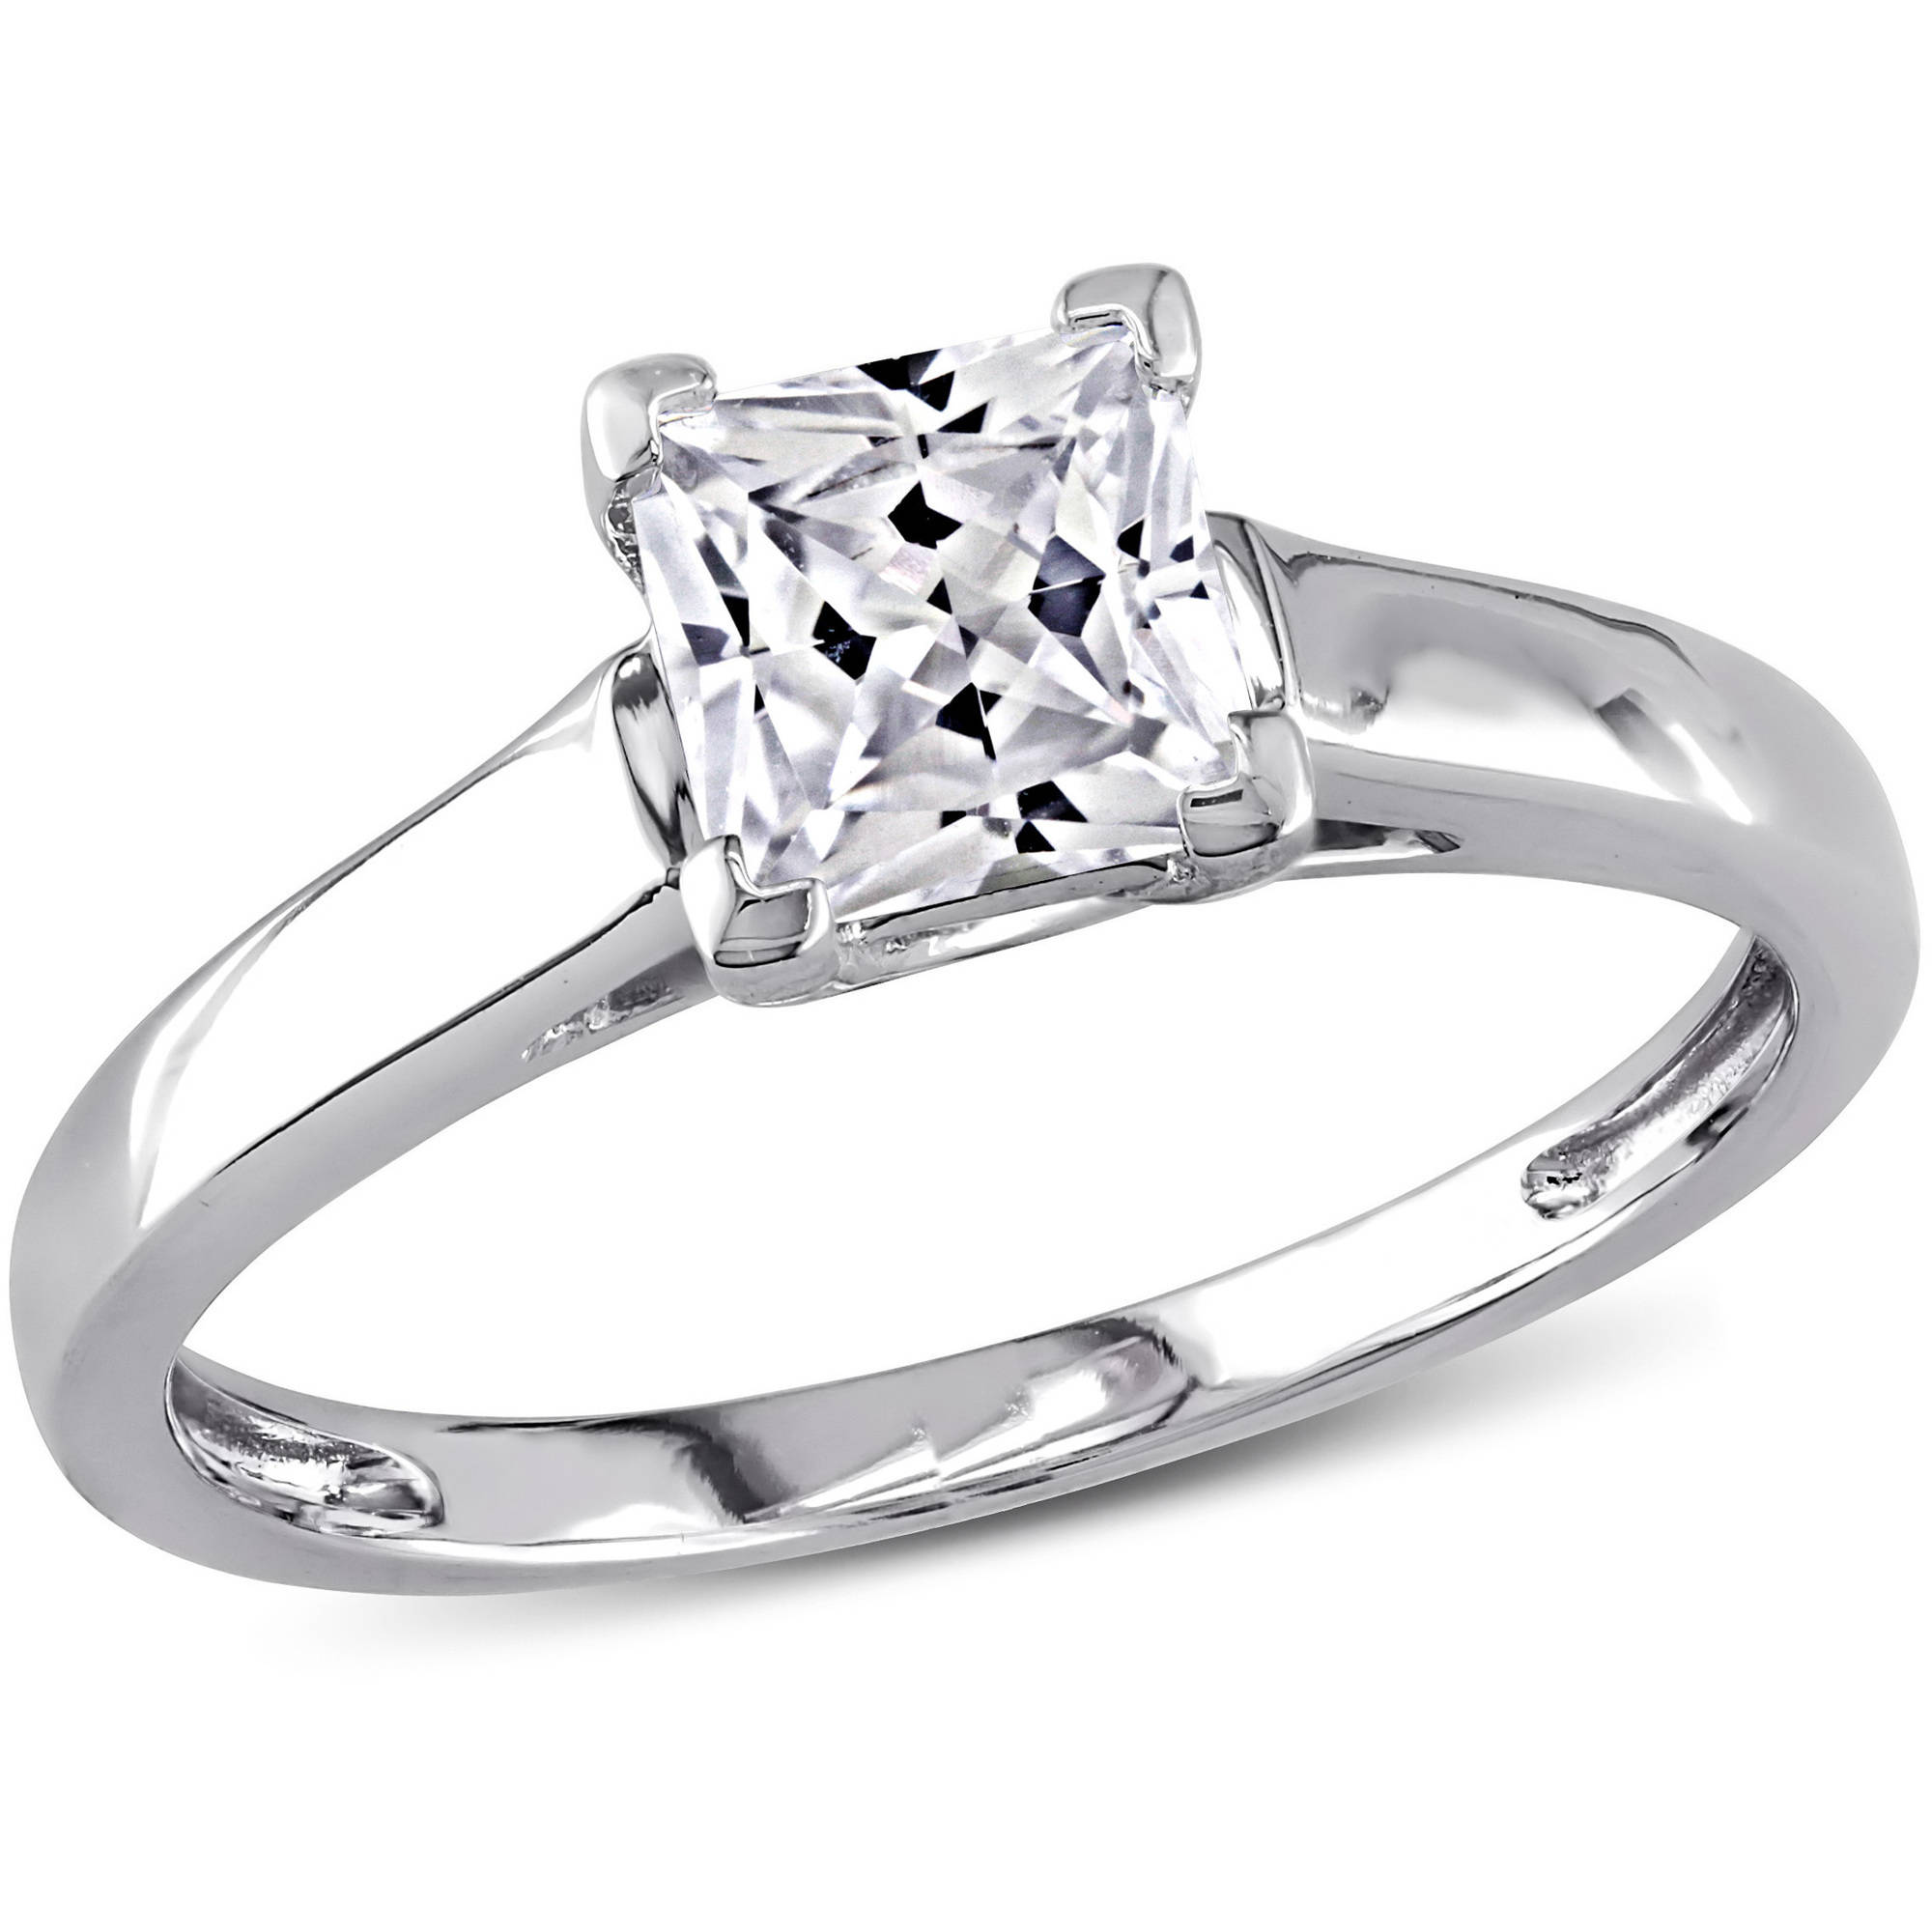 Miabella 1 Carat T.G.W. Princess-Cut Created White Sapphire 10kt White Gold Solitaire Engagement Ring